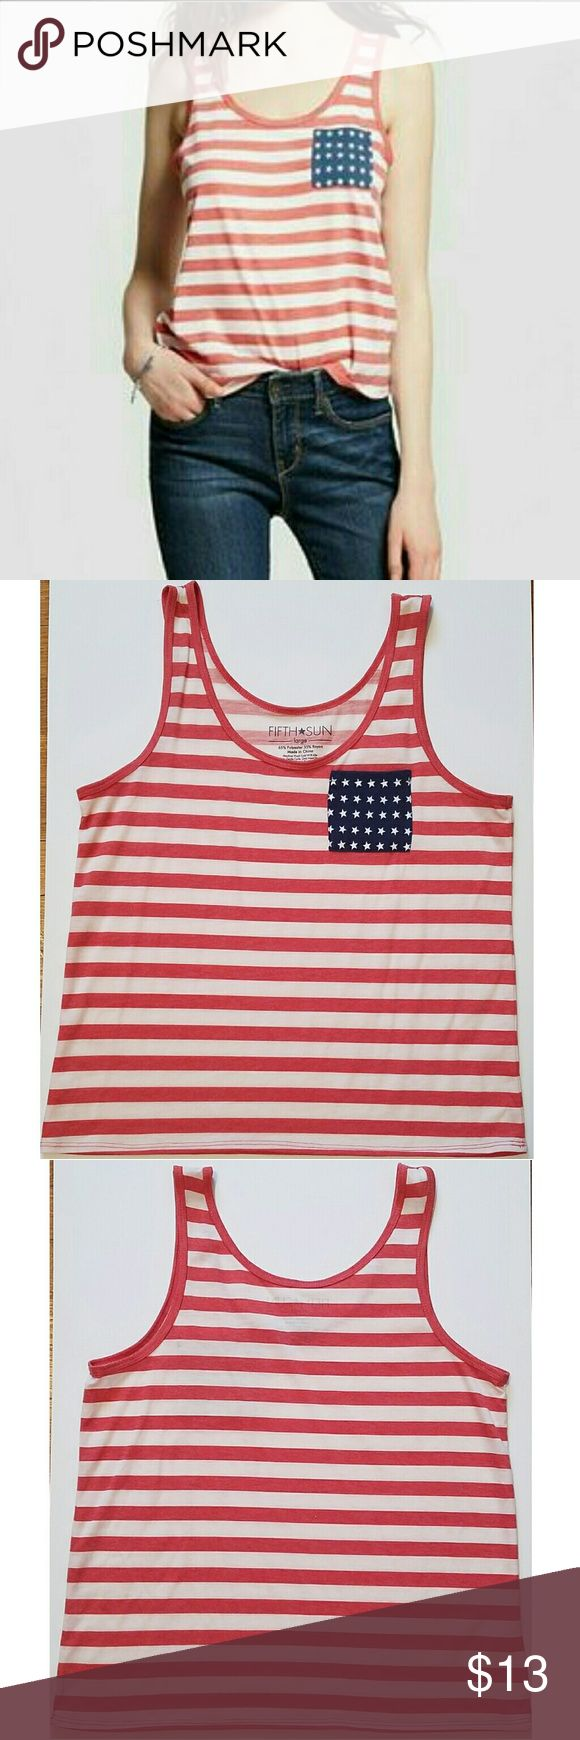 Patriotic Tank Top Represent your country while staying cute and stylish in this cute patrotic tank top from Fifth Sun! Perfect for any occasion especially national holidays, and any party; cute enough for even regular days for a chic bold look. Featuring a front chest pocket. Perfect condition worn once.  65% Polyester - 35% Rayon  Made in China Fifth Sun Tops Tank Tops